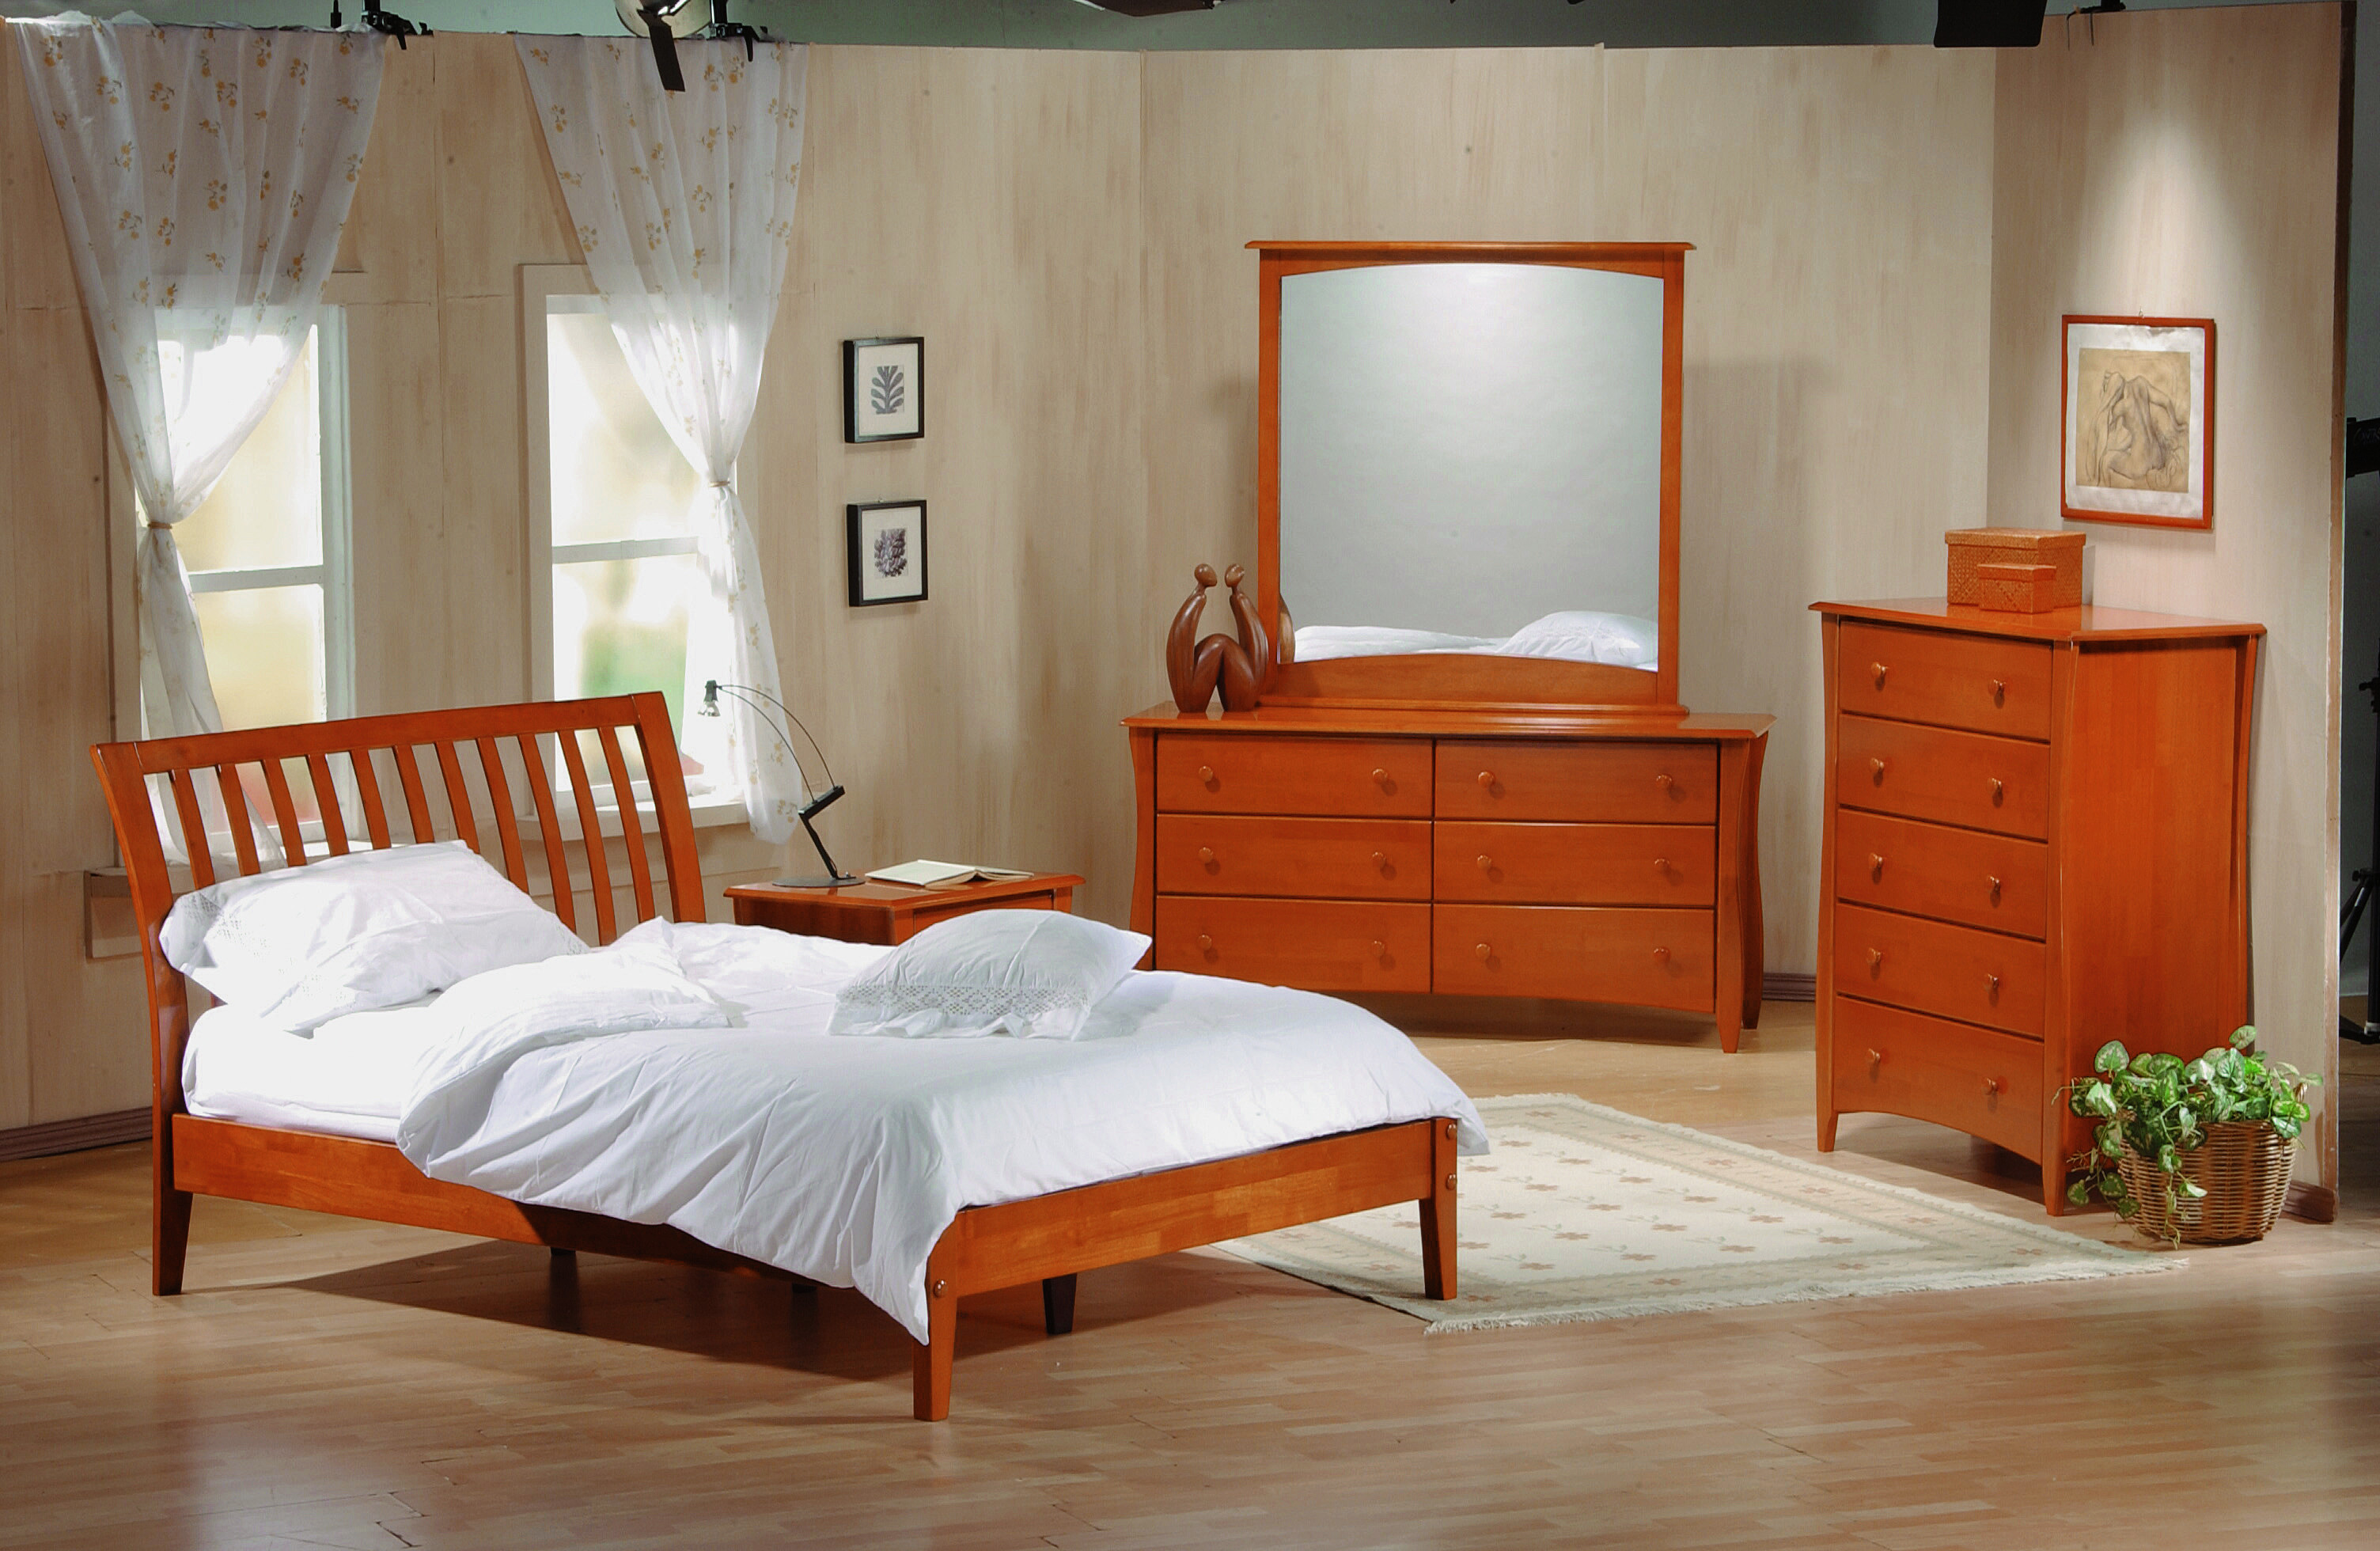 Best ideas about Bedroom Sets For Cheap . Save or Pin Cool Cheap Bedroom Furniture Now.